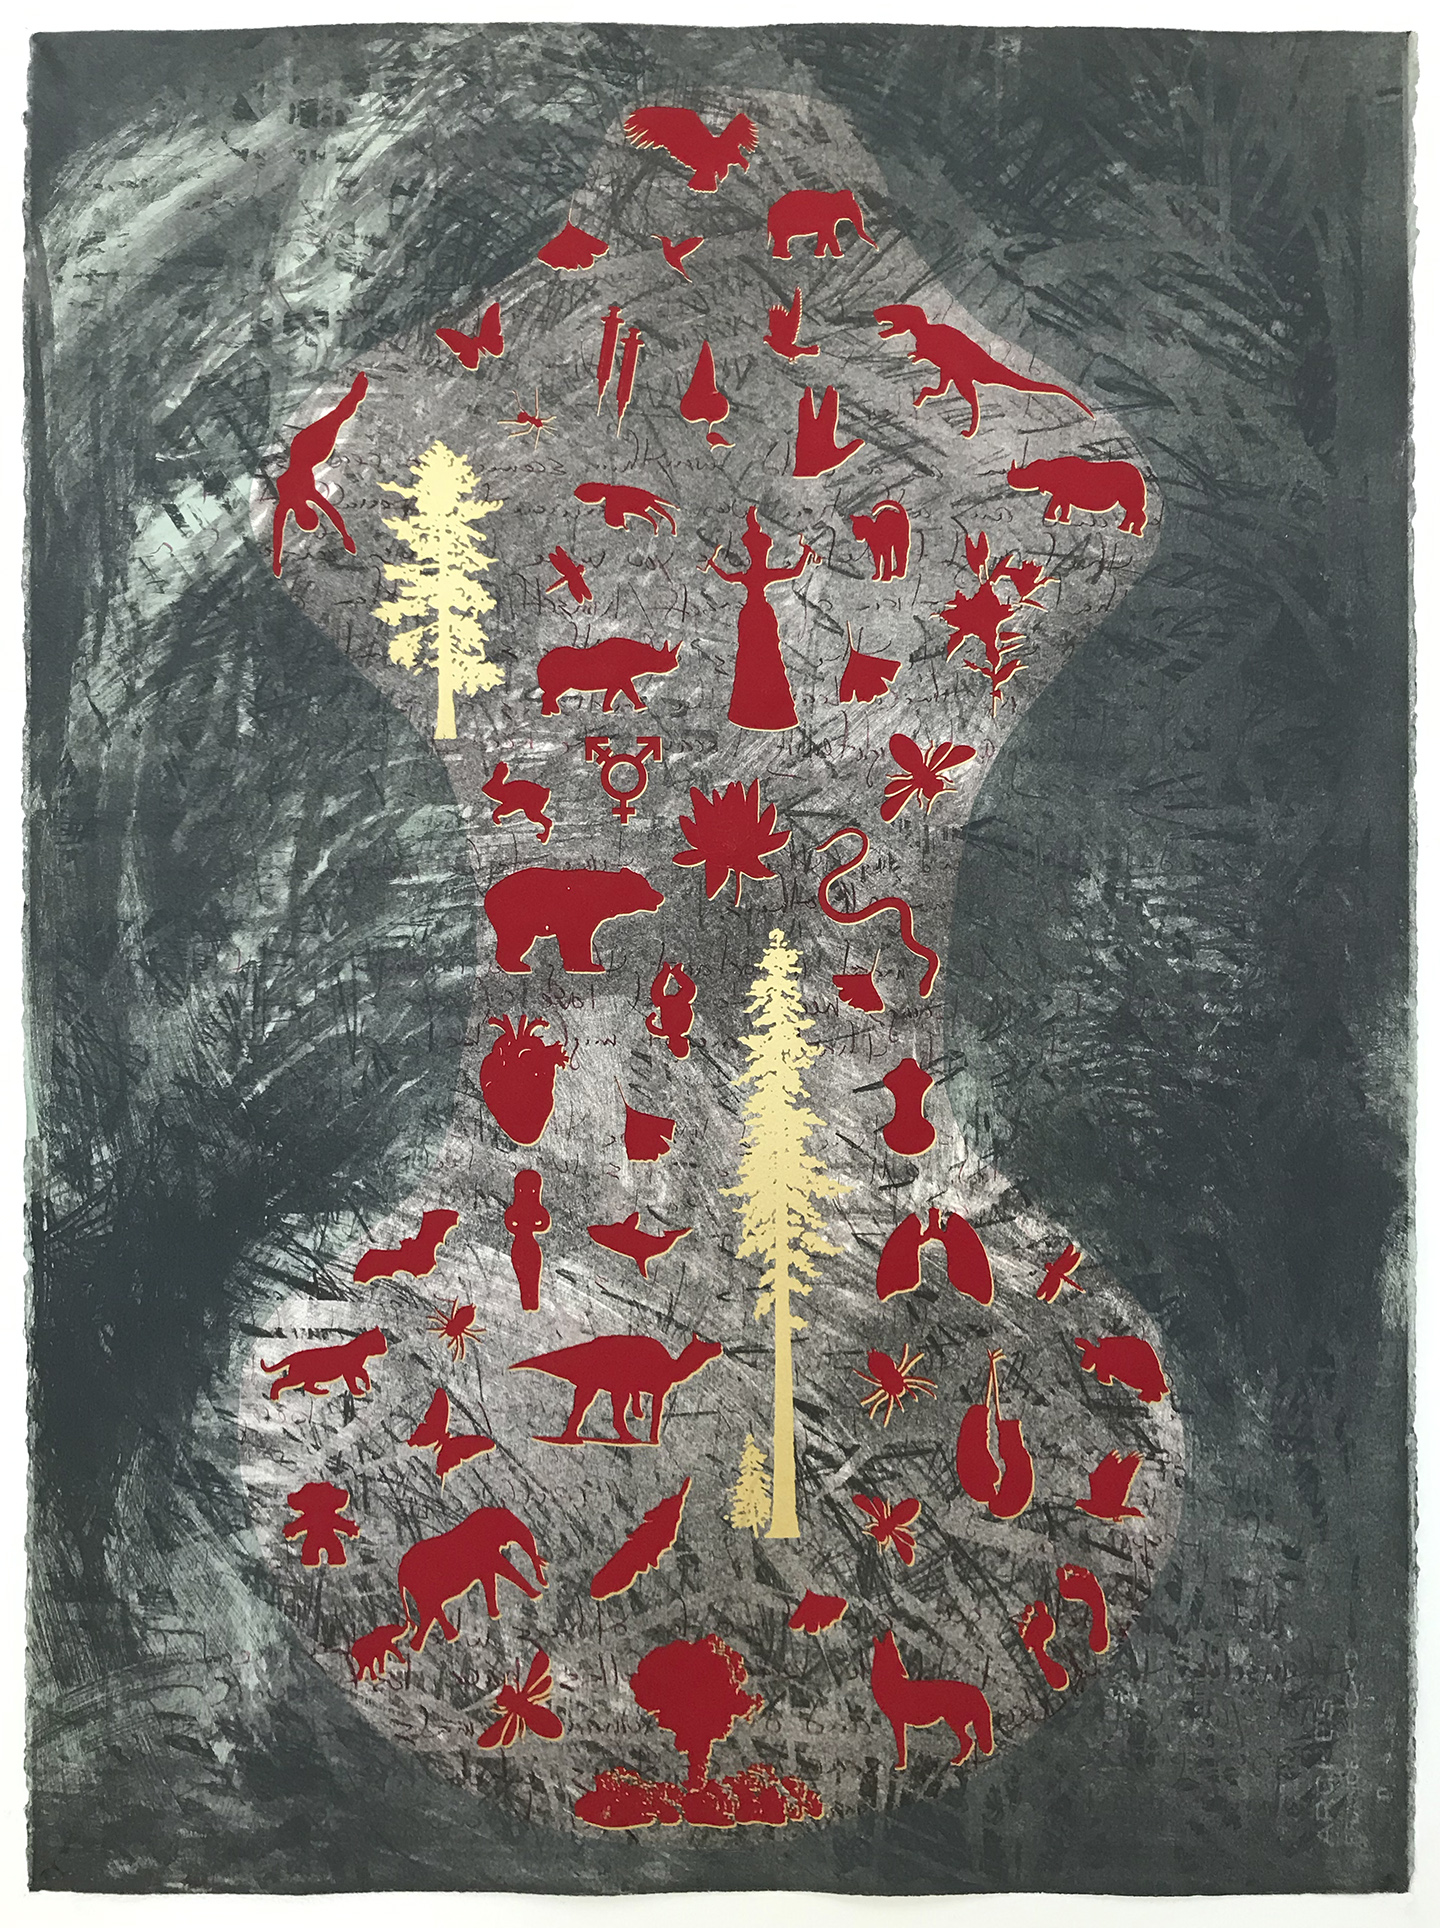 Nanette Wylde, Milagros for Times Like These II, Lithography and screen print, 30 x 22 in, 2021